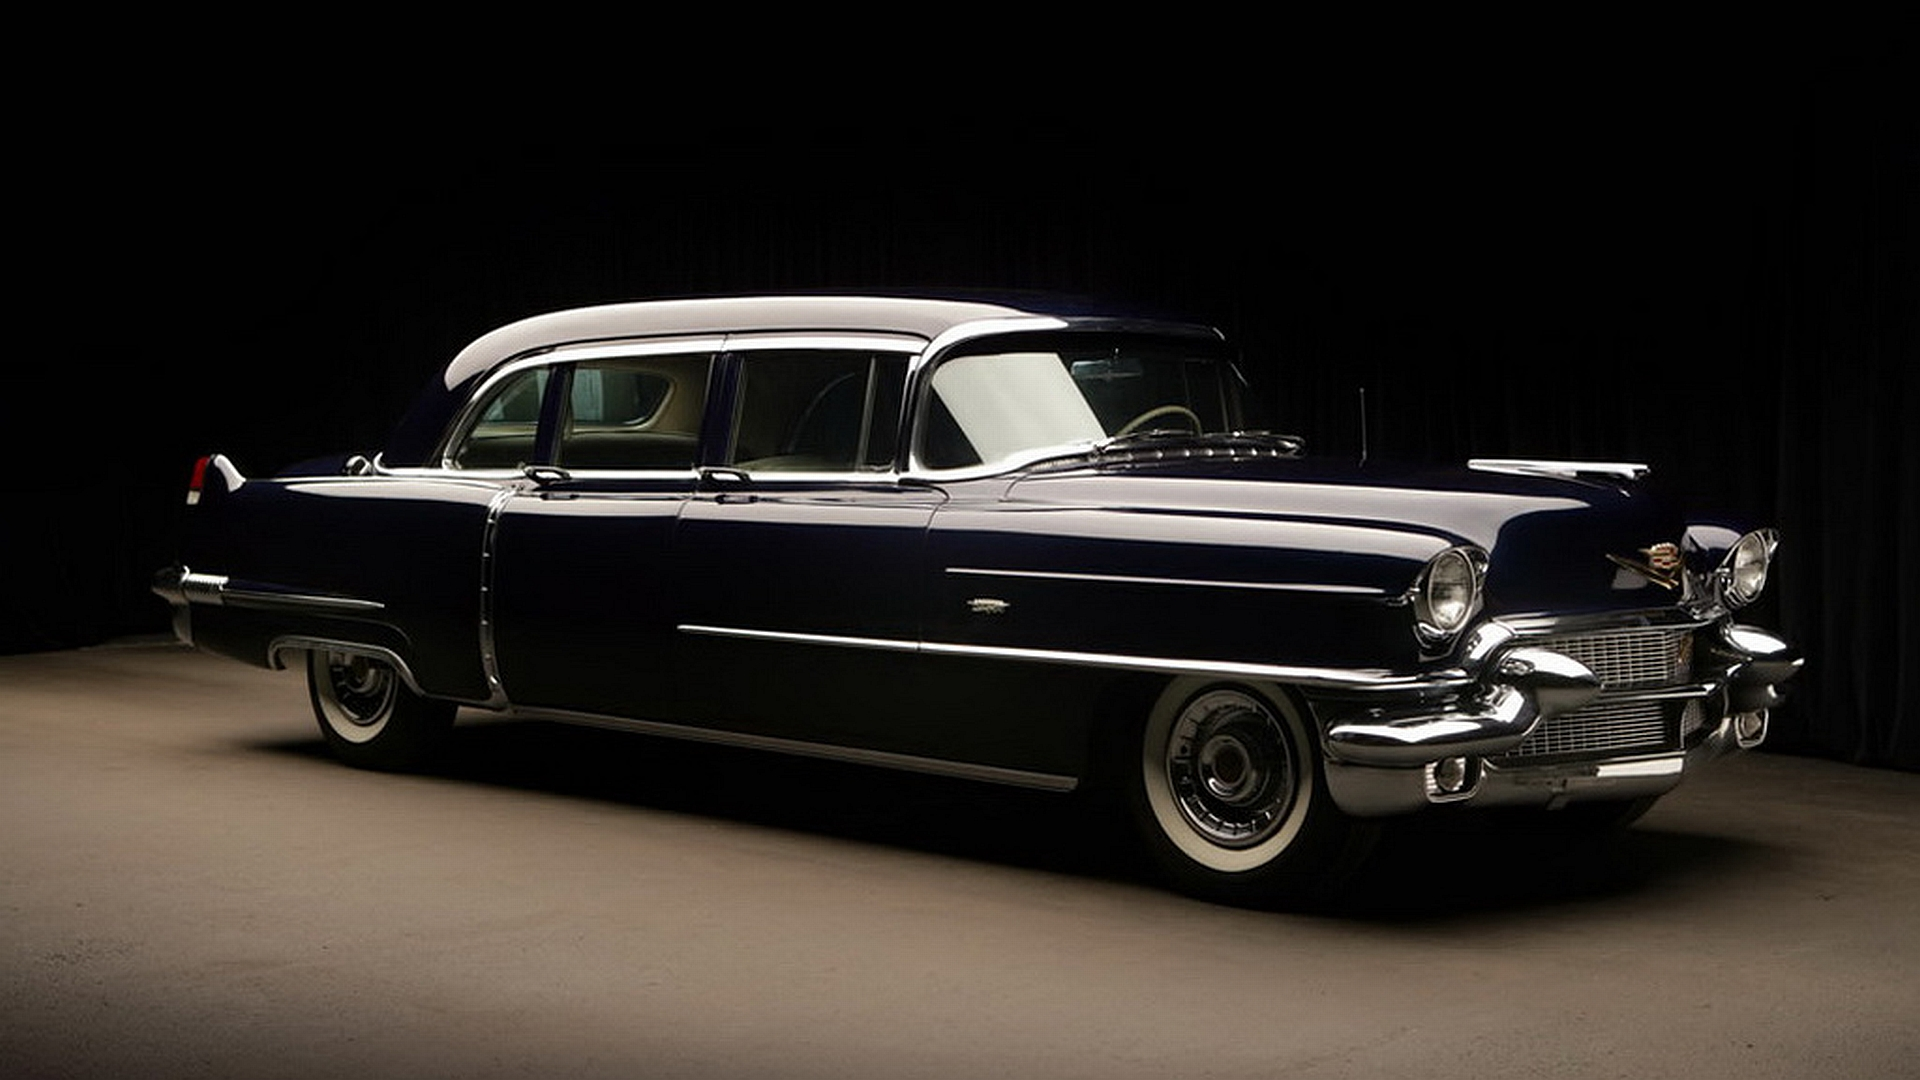 1956 Cadillac Fleetwood Series 75 Limousine HD Wallpaper 1920x1080